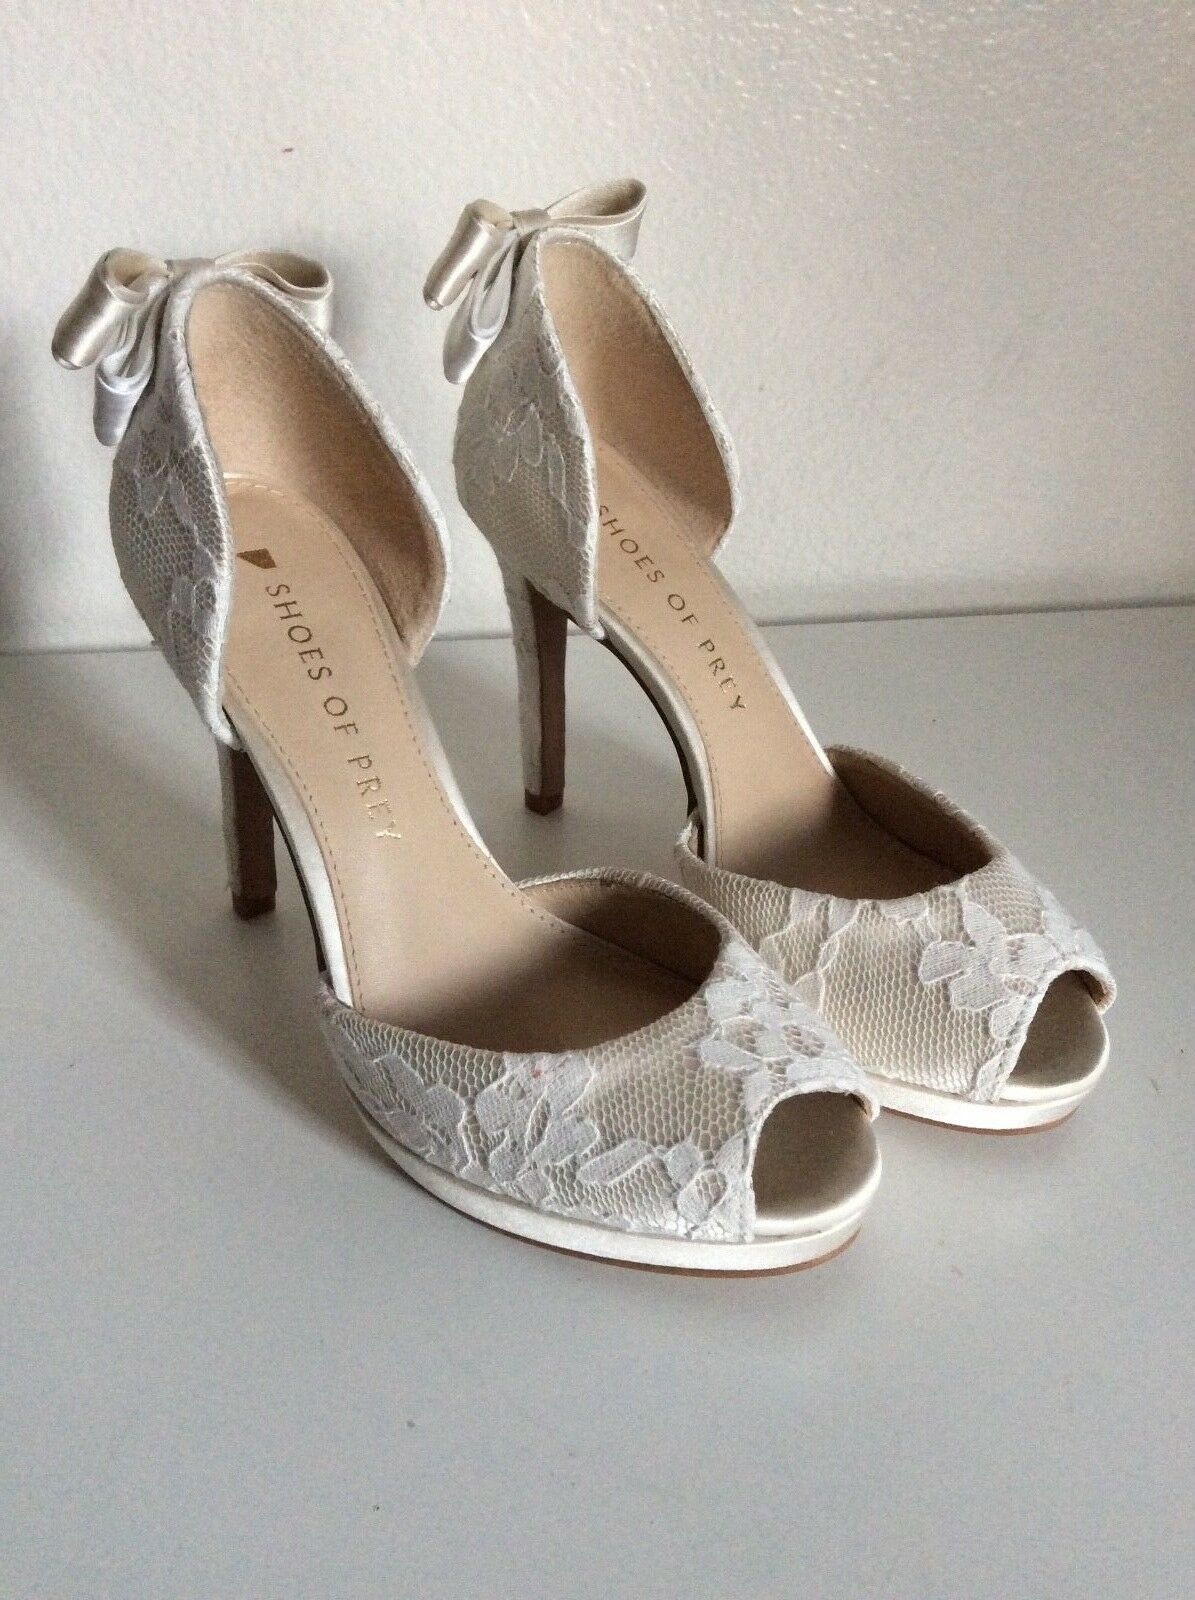 shoes of Prey White Lace Bow Heels Peep Toe Bride Bridal Party 4.5 New